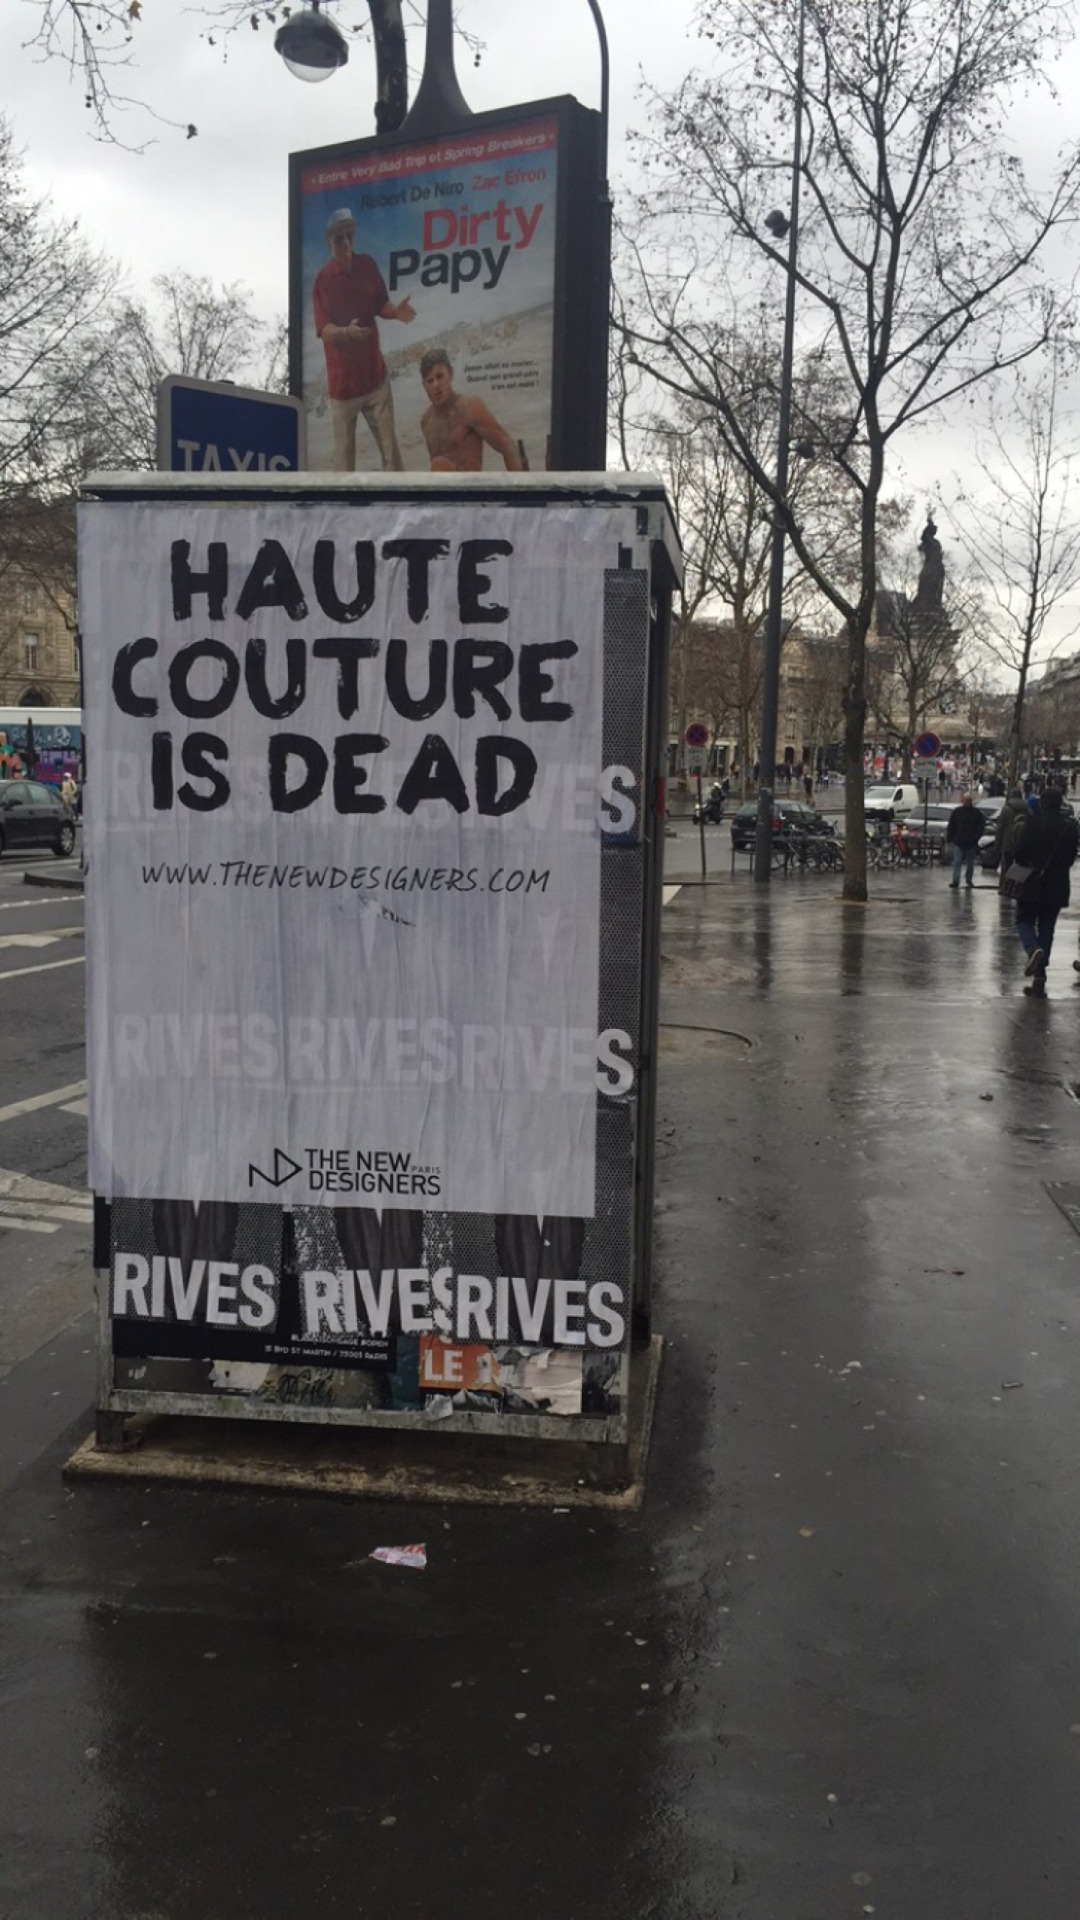 HAUTE COUTURE IS DEAD